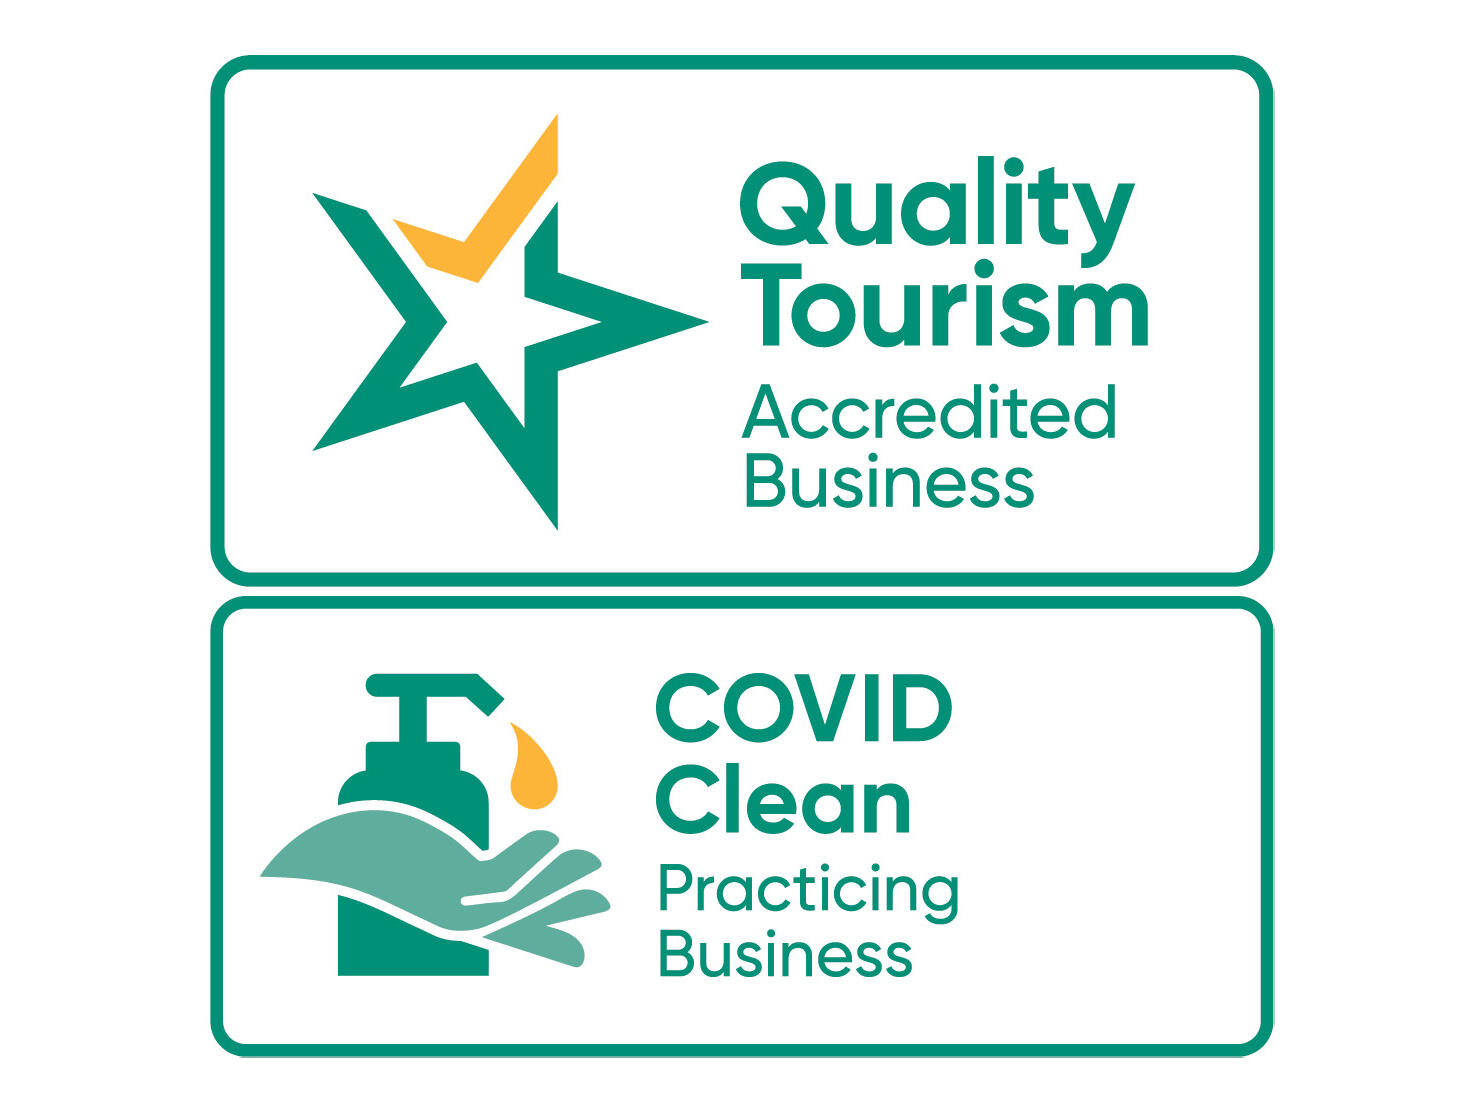 Covid -19 Clean accredited logo